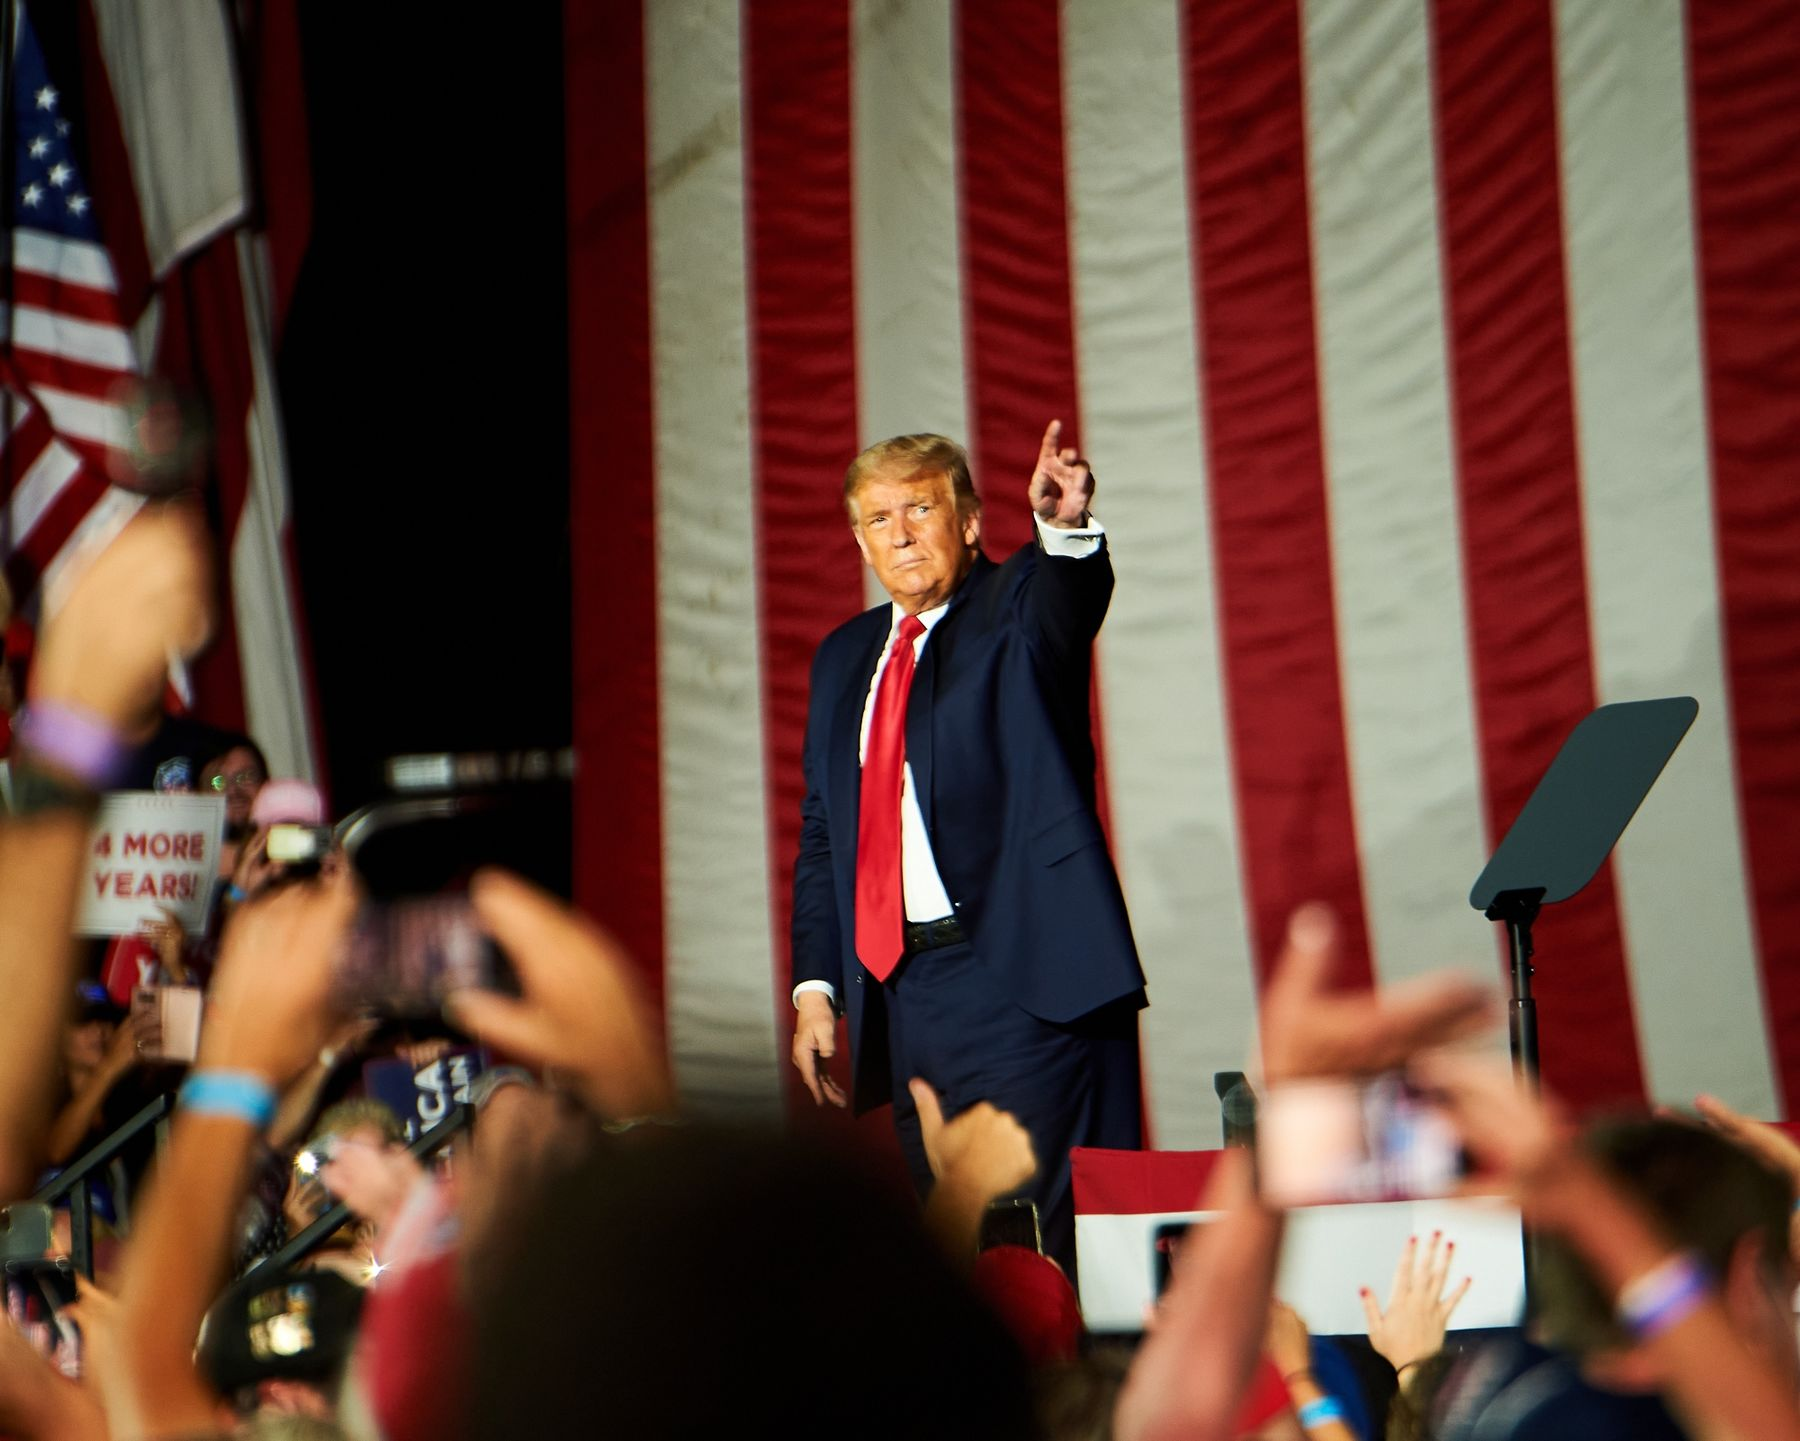 Trump during a rally in Sanford, Florida. on Oct. 12. Trump is now placing his final bet on just four battleground states: Michigan, Minnesota, Ohio and Pennsylvania.